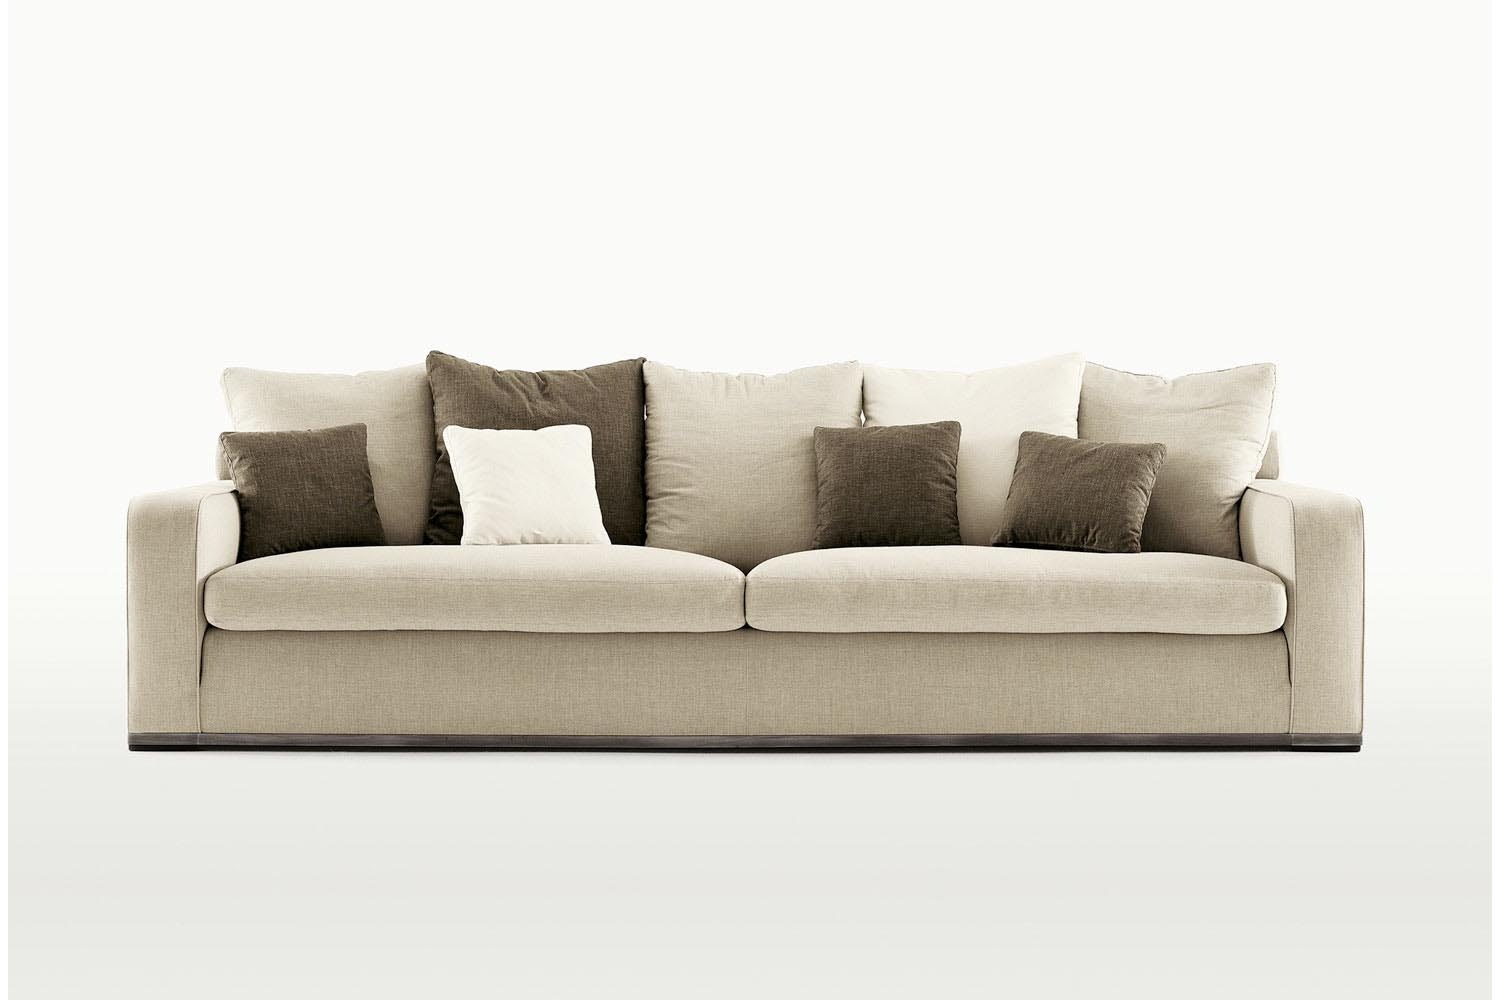 Imprimatur Sofa by Antonio Citterio for Maxalto